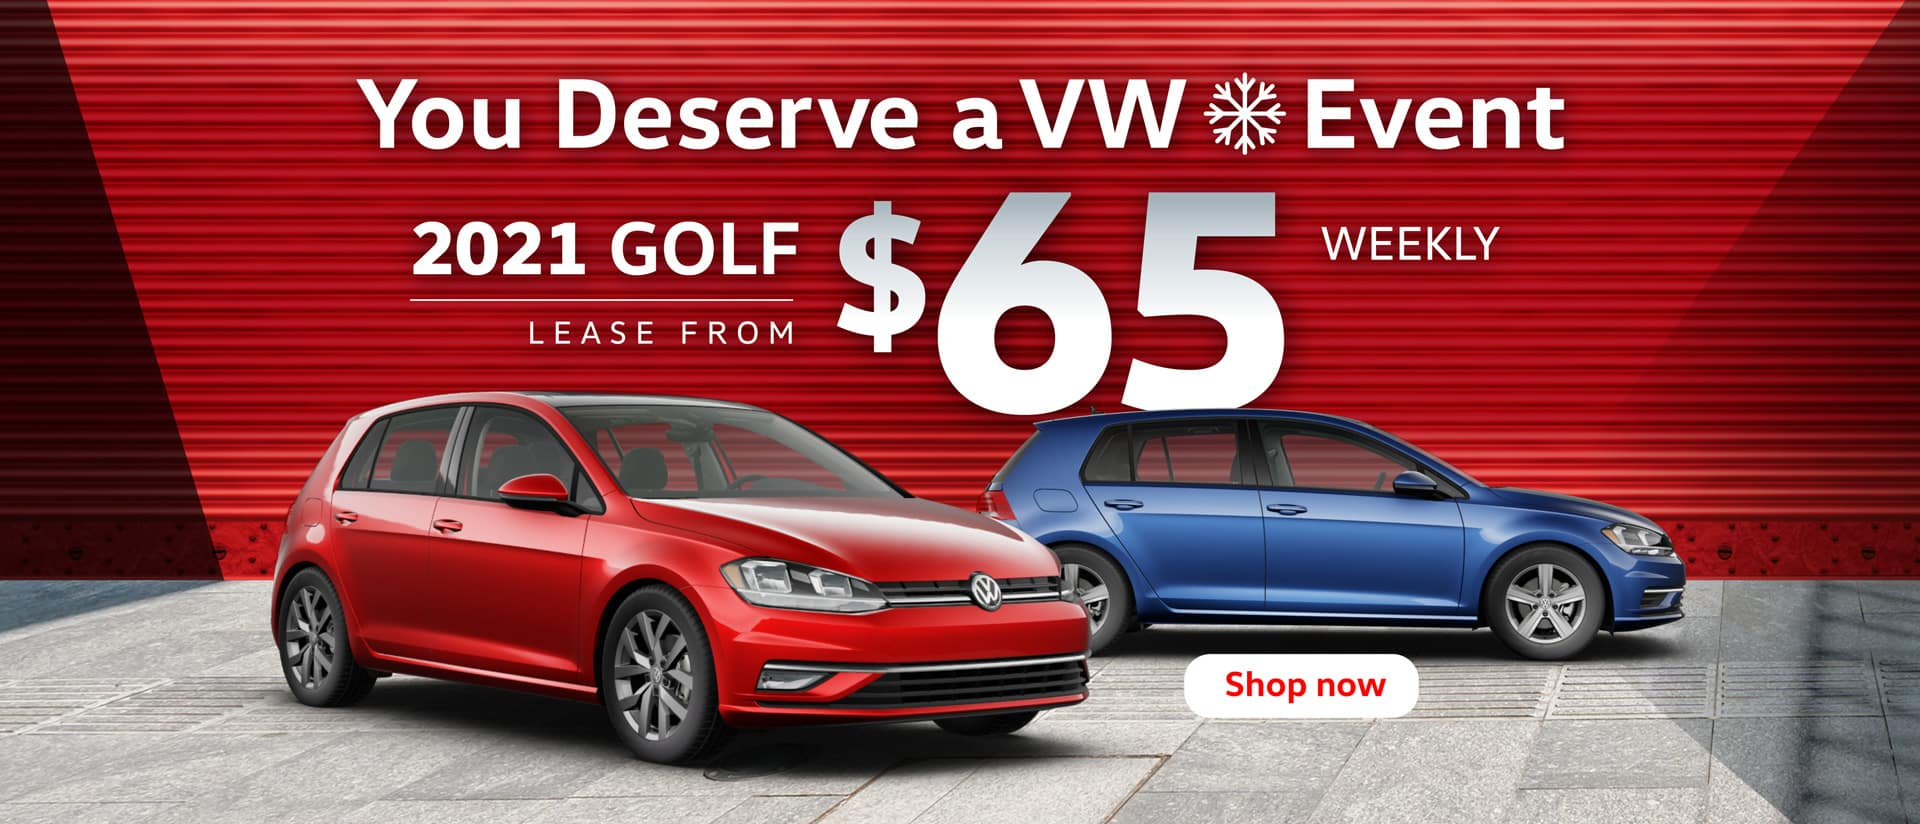 1494175_VW_YouDeserve_2021Golf_WB_MRV